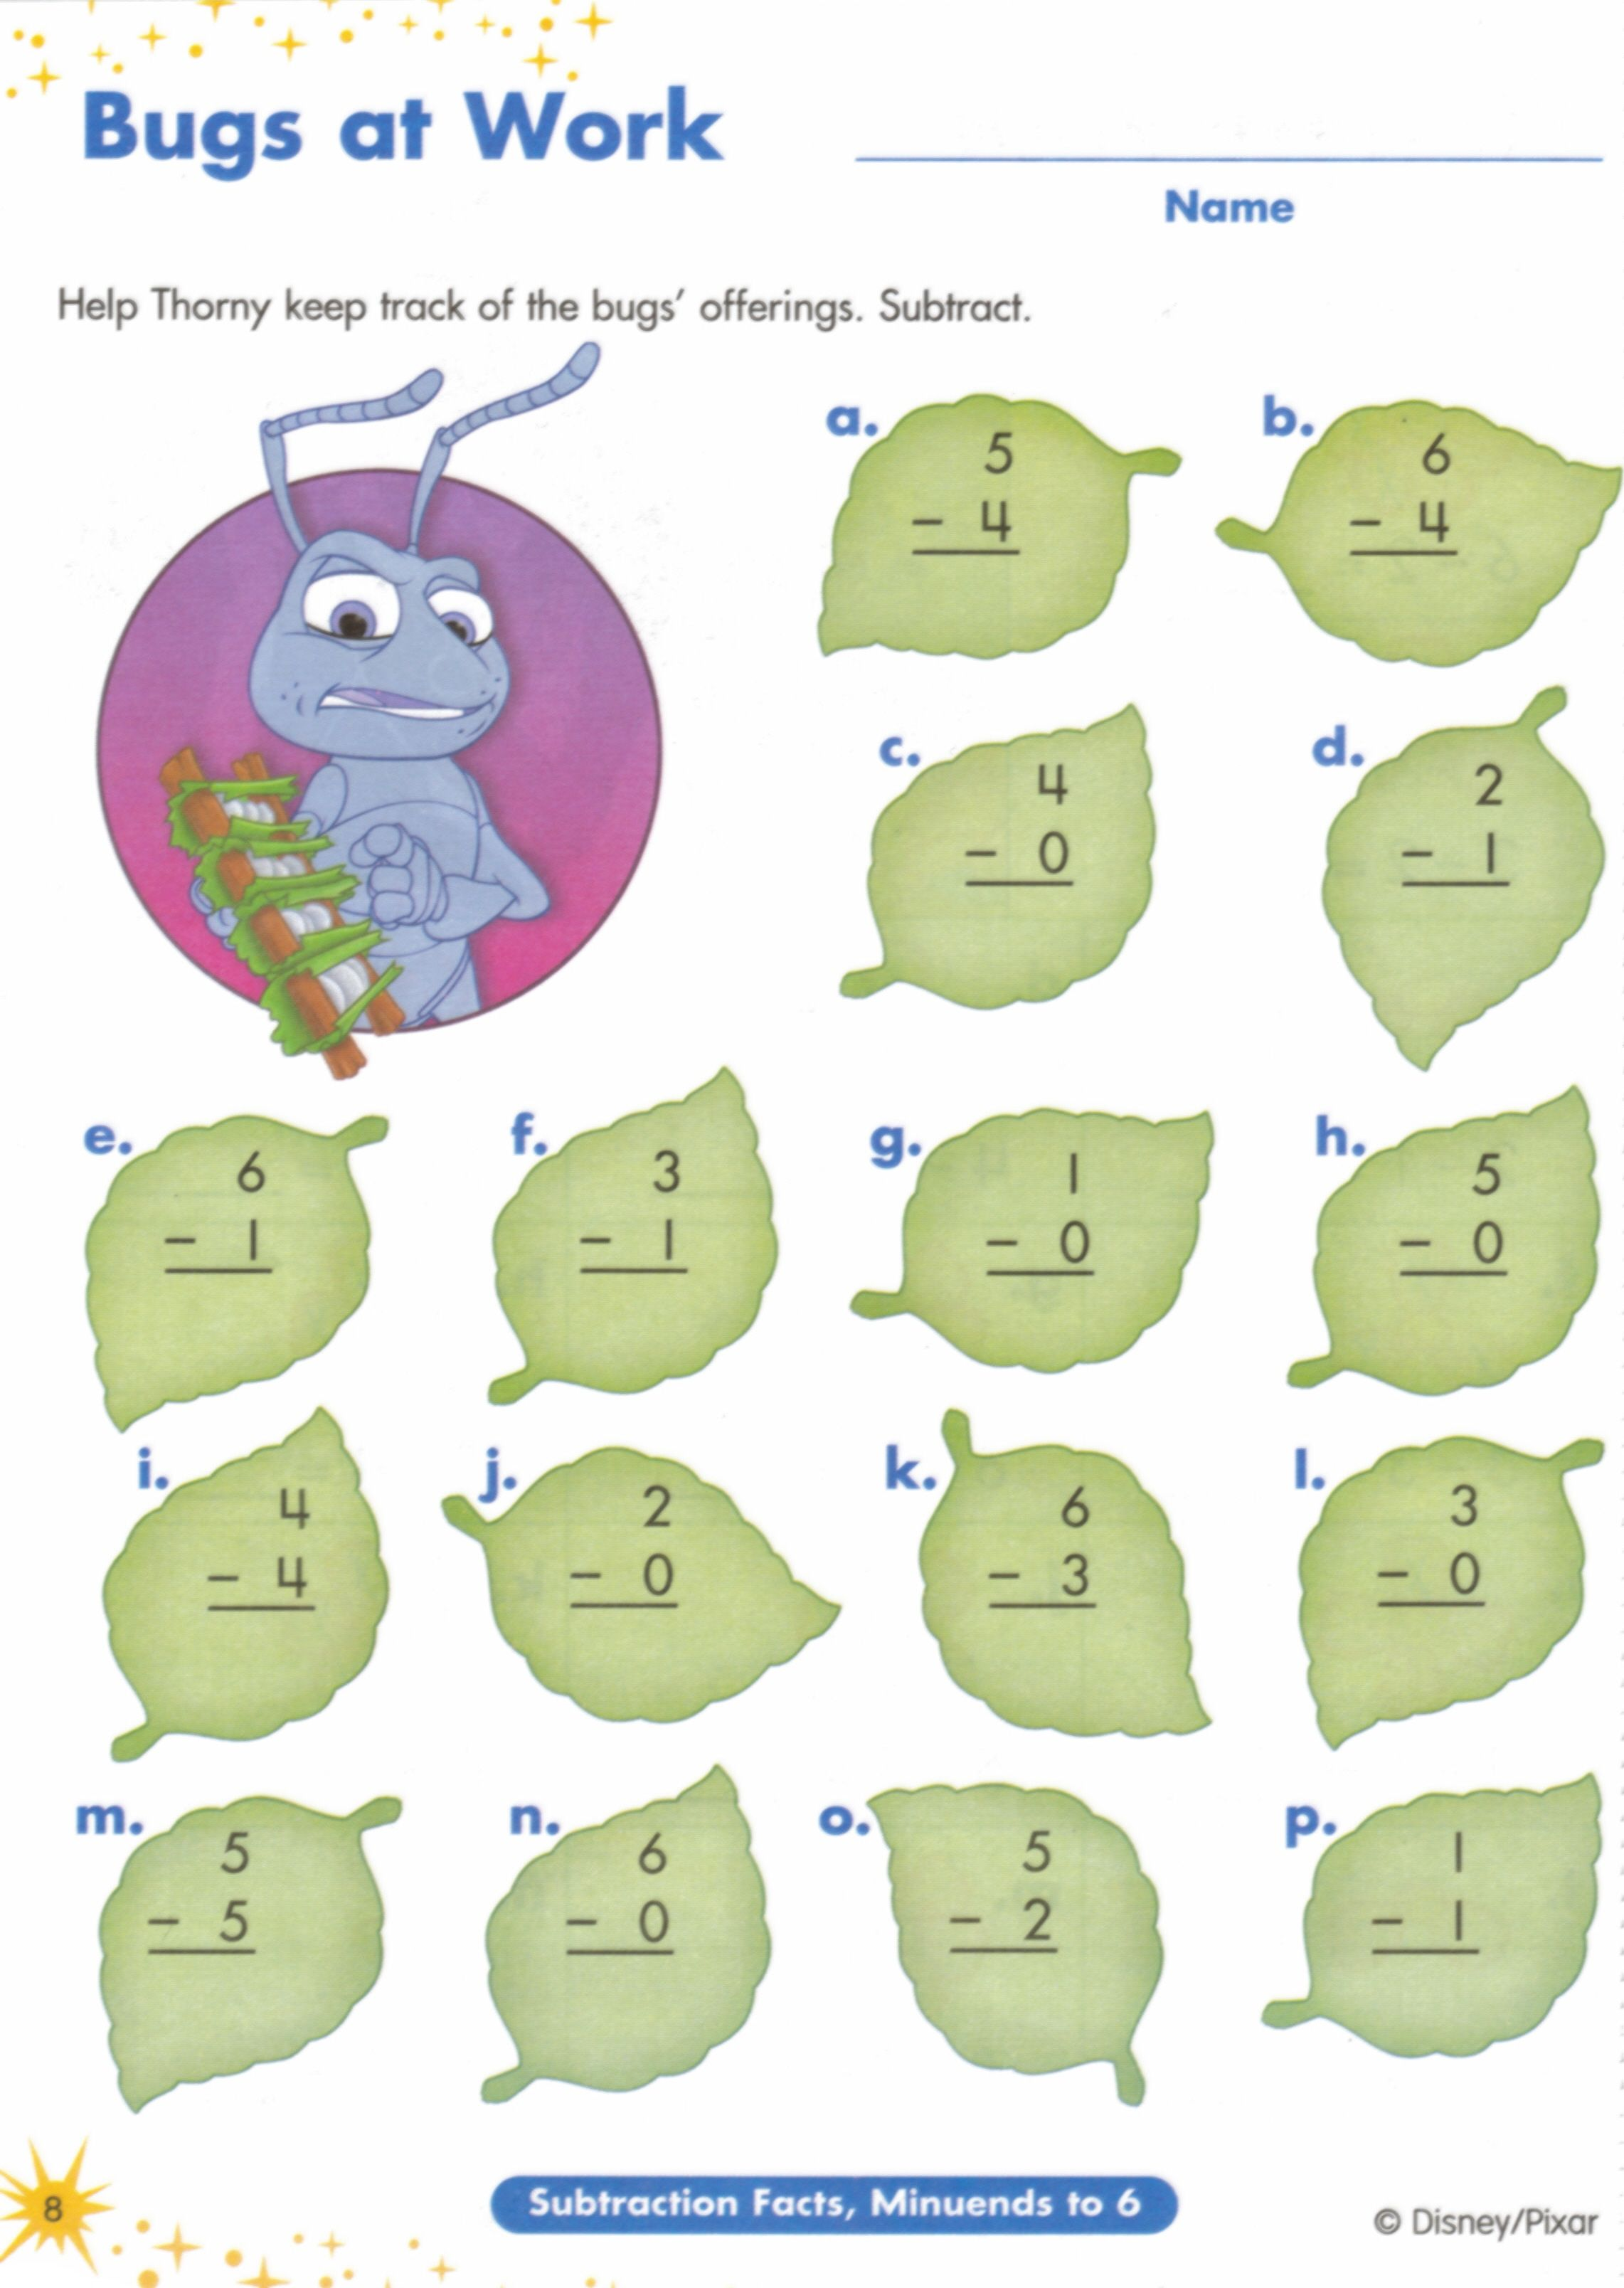 Aldiablosus  Prepossessing  Images About Worksheets On Pinterest  Fun Facts For Kids  With Likable  Images About Worksheets On Pinterest  Fun Facts For Kids Earth Day Worksheets And Jungles With Beautiful Subtracting Decimals Worksheets Also Worksheet Multiplication In Addition Declarative And Interrogative Sentences Worksheet And Additive Inverse Worksheet As Well As Reading Comprehension Worksheets Th Grade Additionally Free Printable Worksheet From Pinterestcom With Aldiablosus  Likable  Images About Worksheets On Pinterest  Fun Facts For Kids  With Beautiful  Images About Worksheets On Pinterest  Fun Facts For Kids Earth Day Worksheets And Jungles And Prepossessing Subtracting Decimals Worksheets Also Worksheet Multiplication In Addition Declarative And Interrogative Sentences Worksheet From Pinterestcom